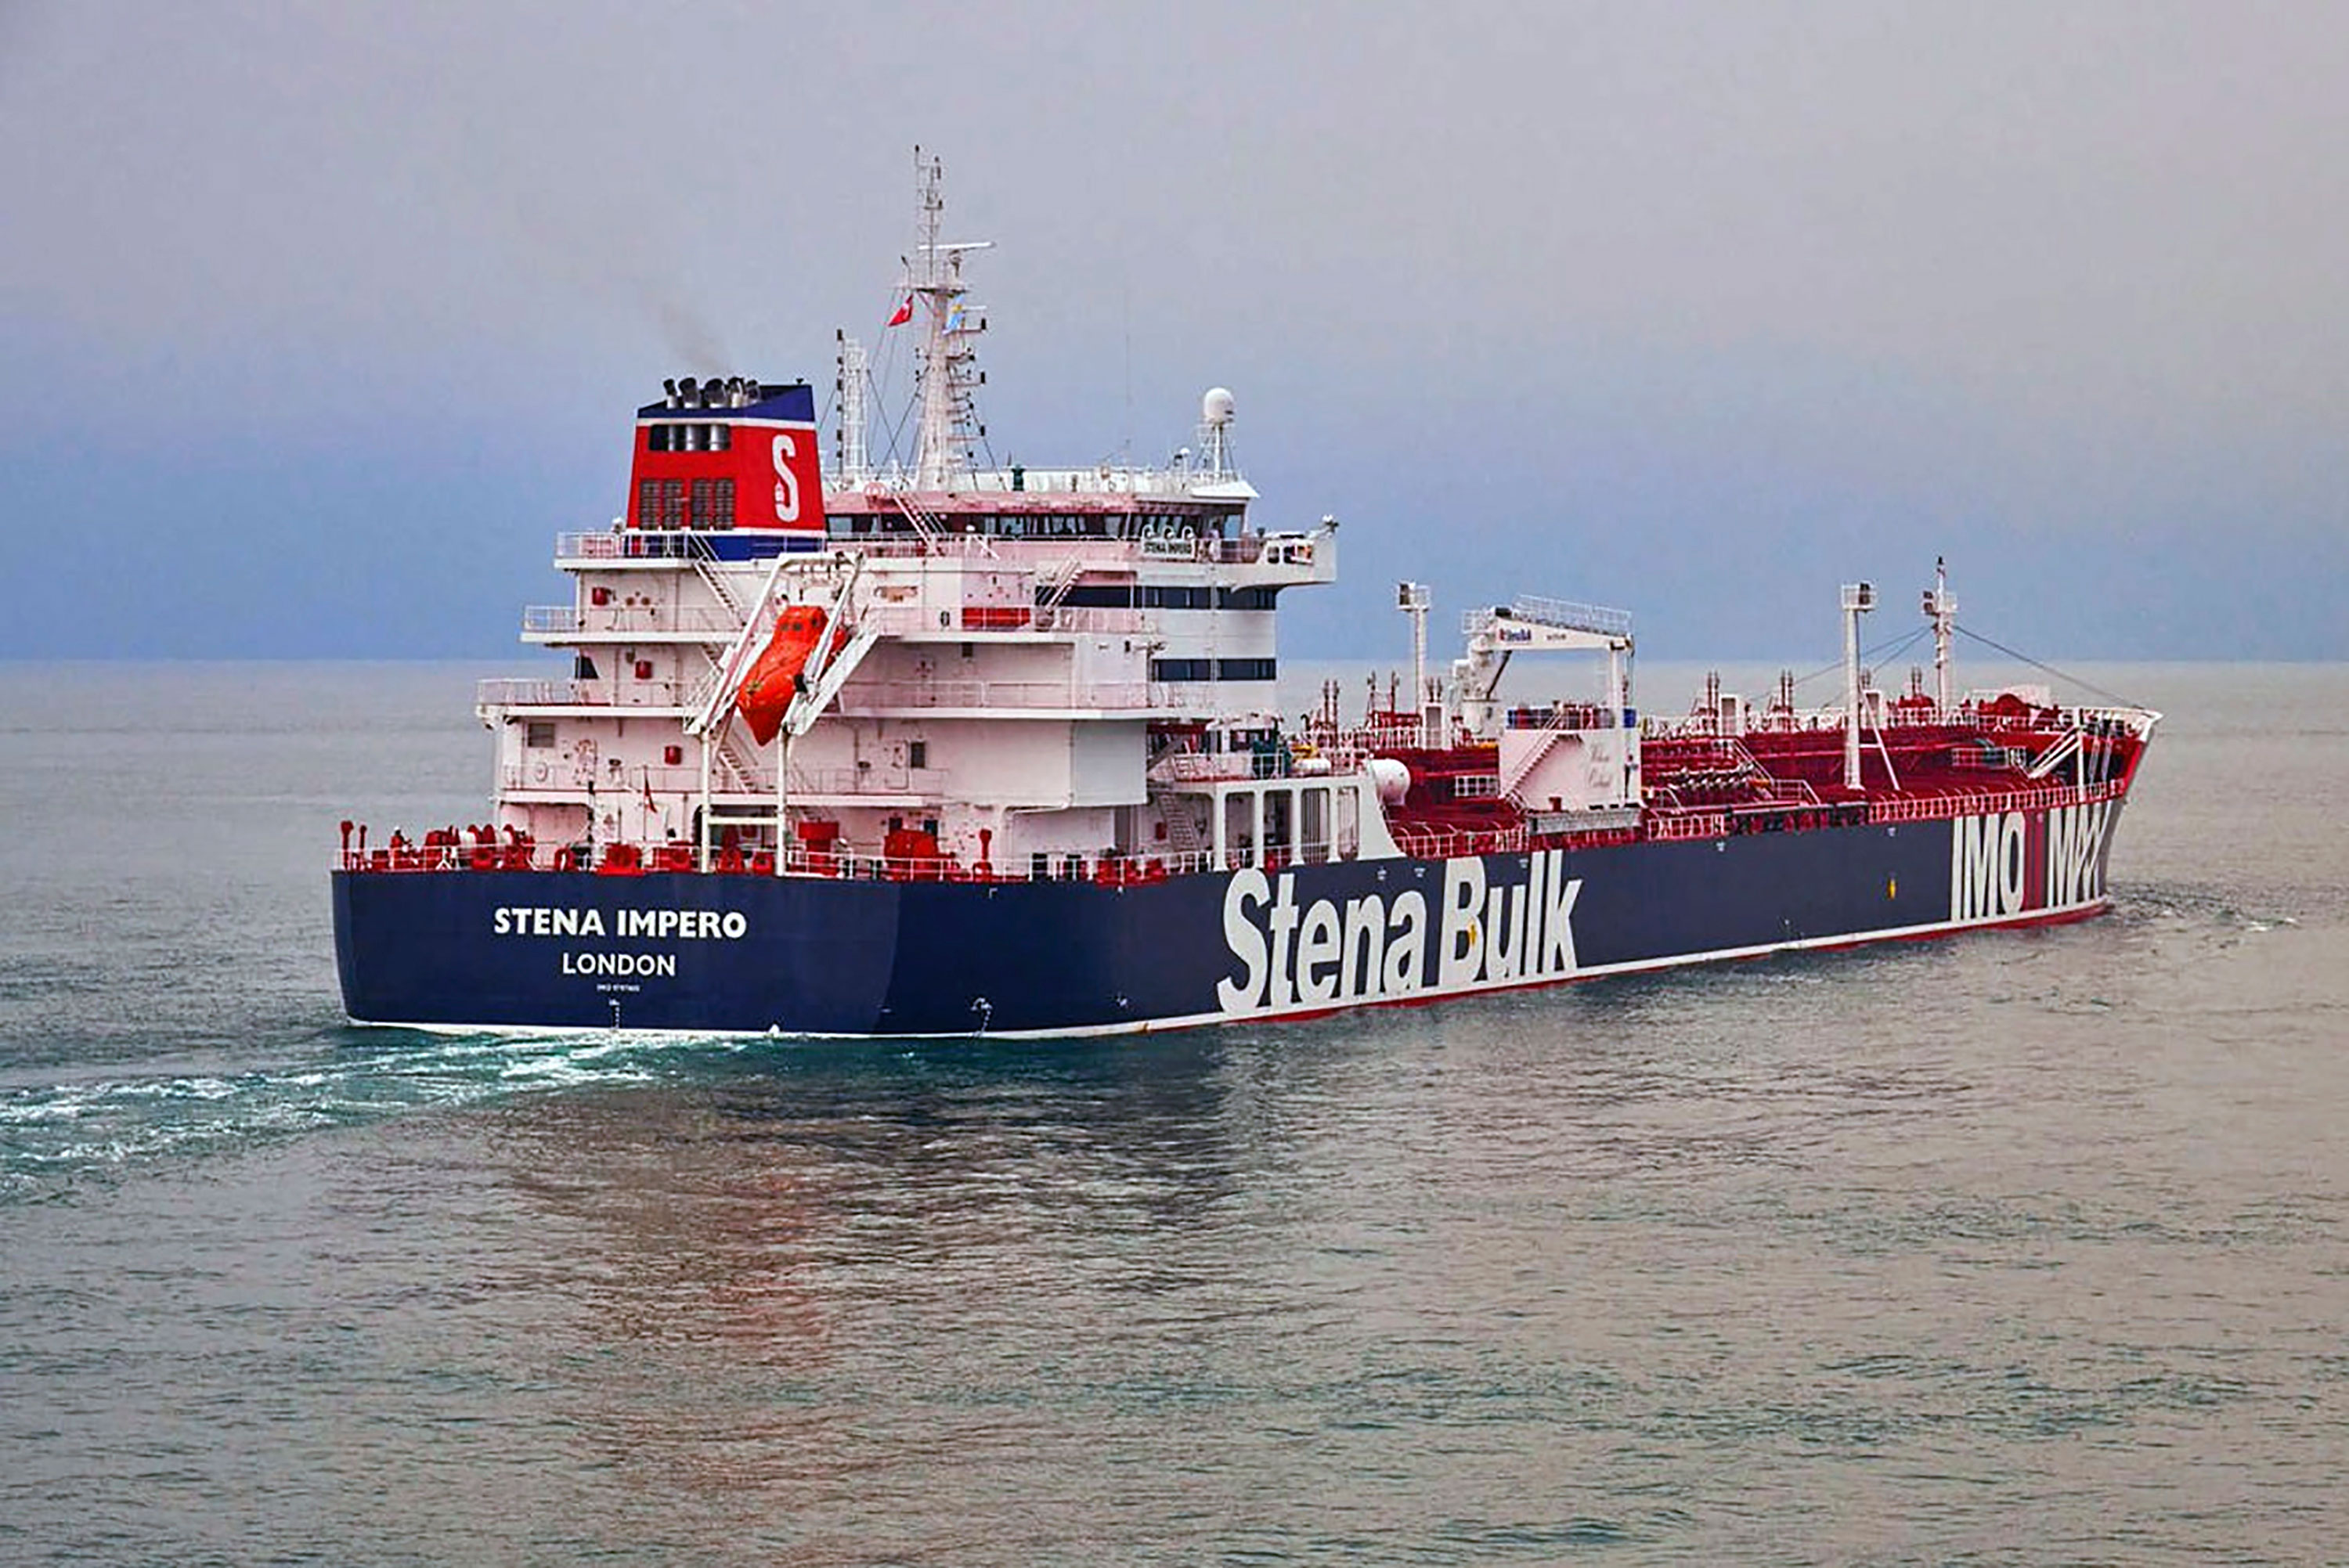 The British-flagged oil tanker, Stena Impero, in the Iranian port of Bandar Abbas.